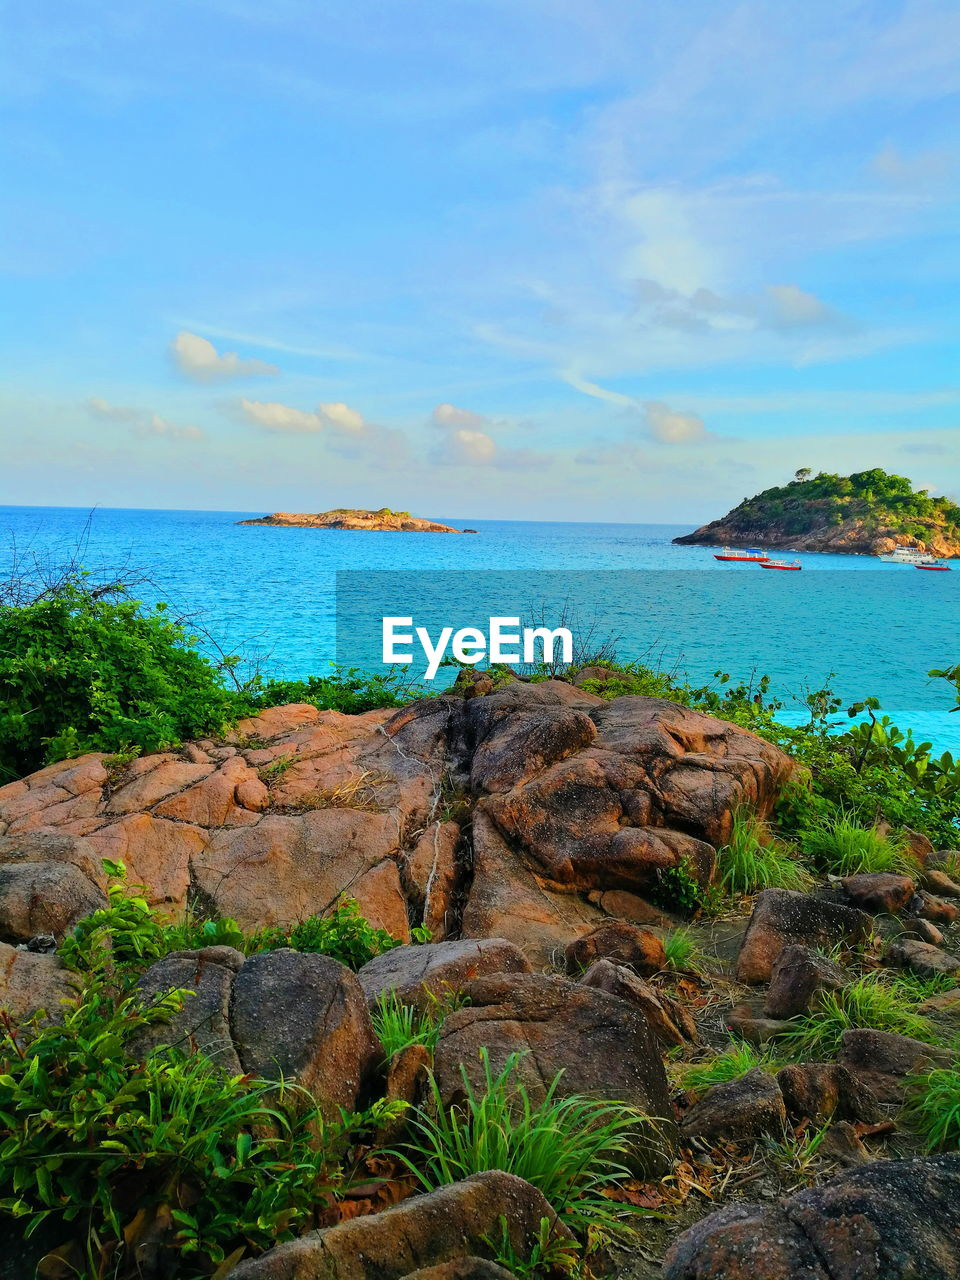 sky, water, scenics - nature, sea, tranquility, beauty in nature, tranquil scene, rock, land, nature, plant, solid, rock - object, no people, cloud - sky, horizon over water, beach, horizon, day, outdoors, turquoise colored